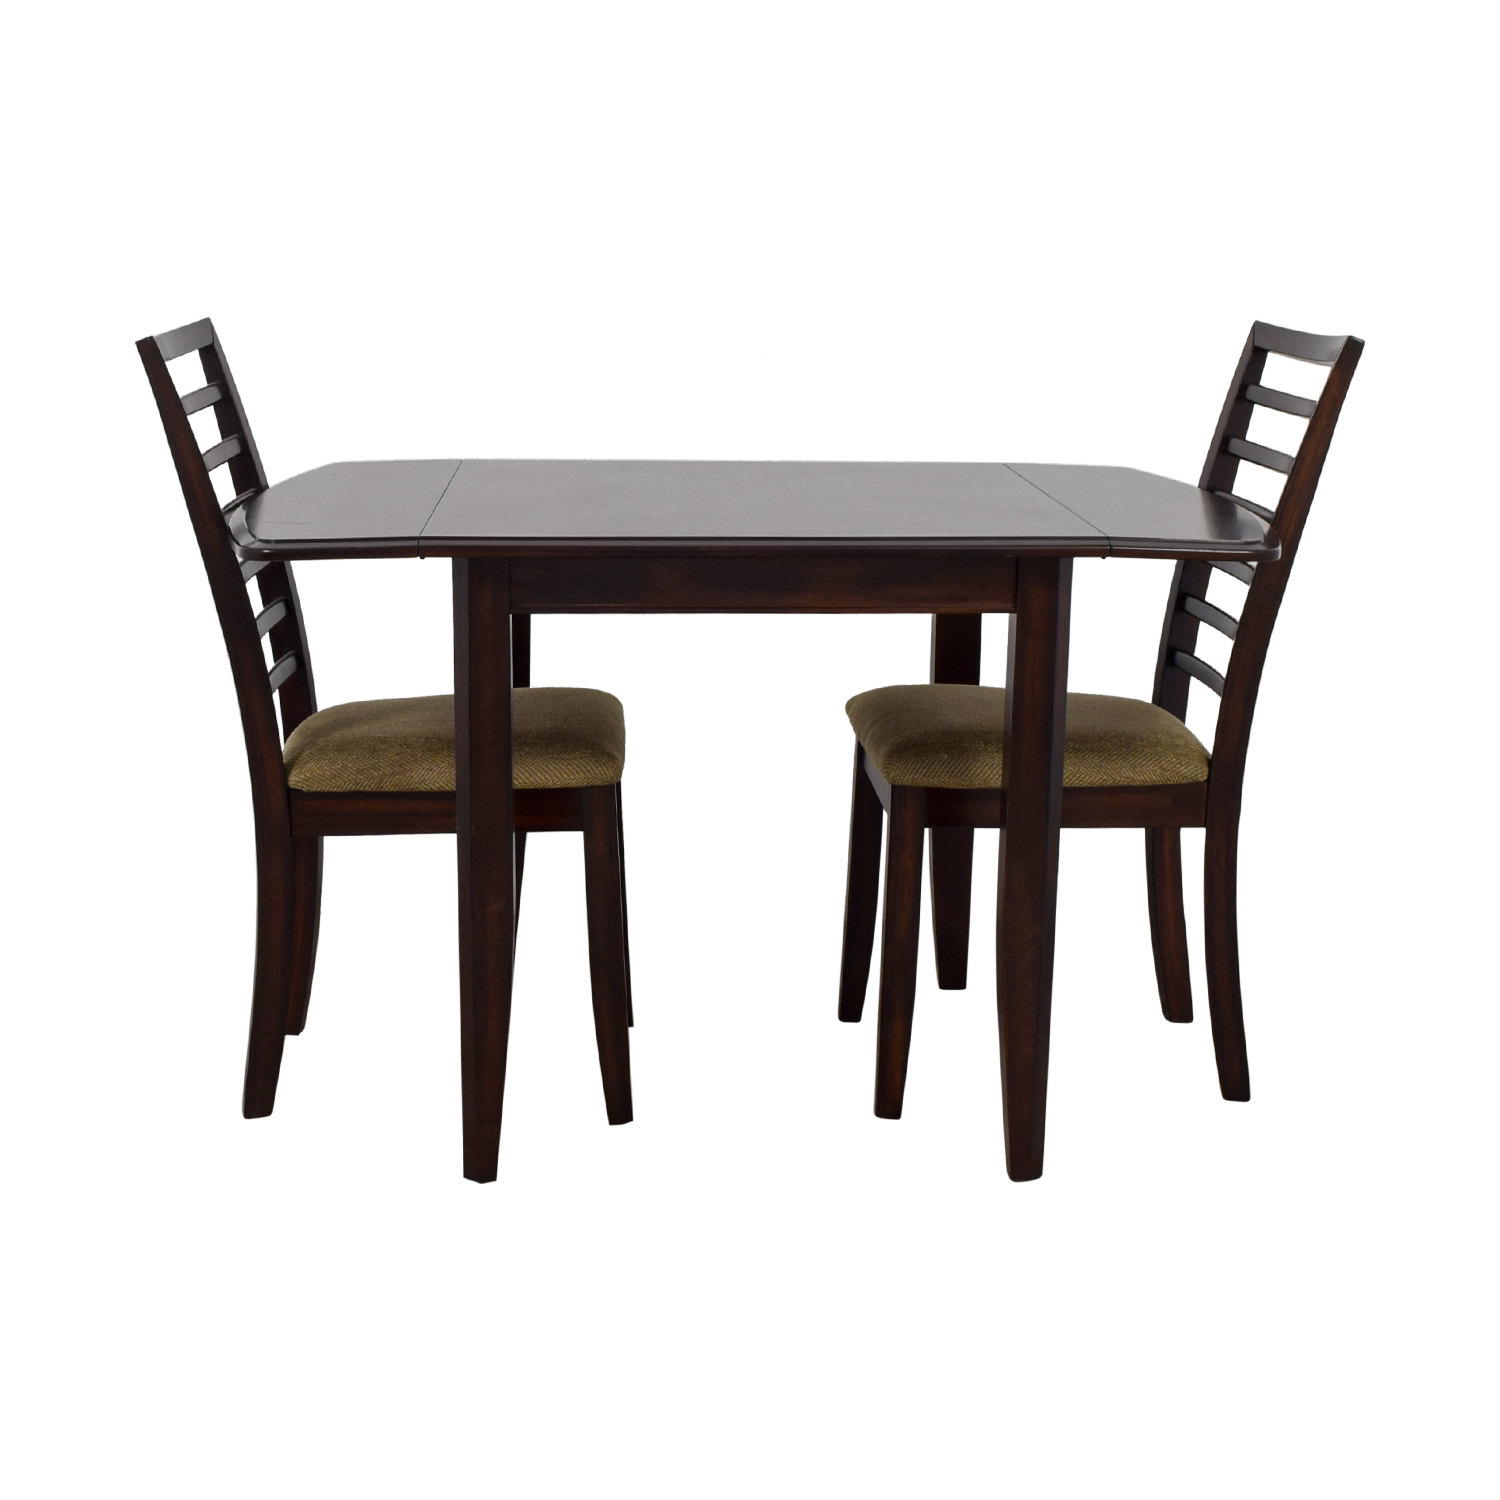 Raymour And Flanigan Dining Chairs: Raymour & Flanigan Raymour & Flanigan Dining